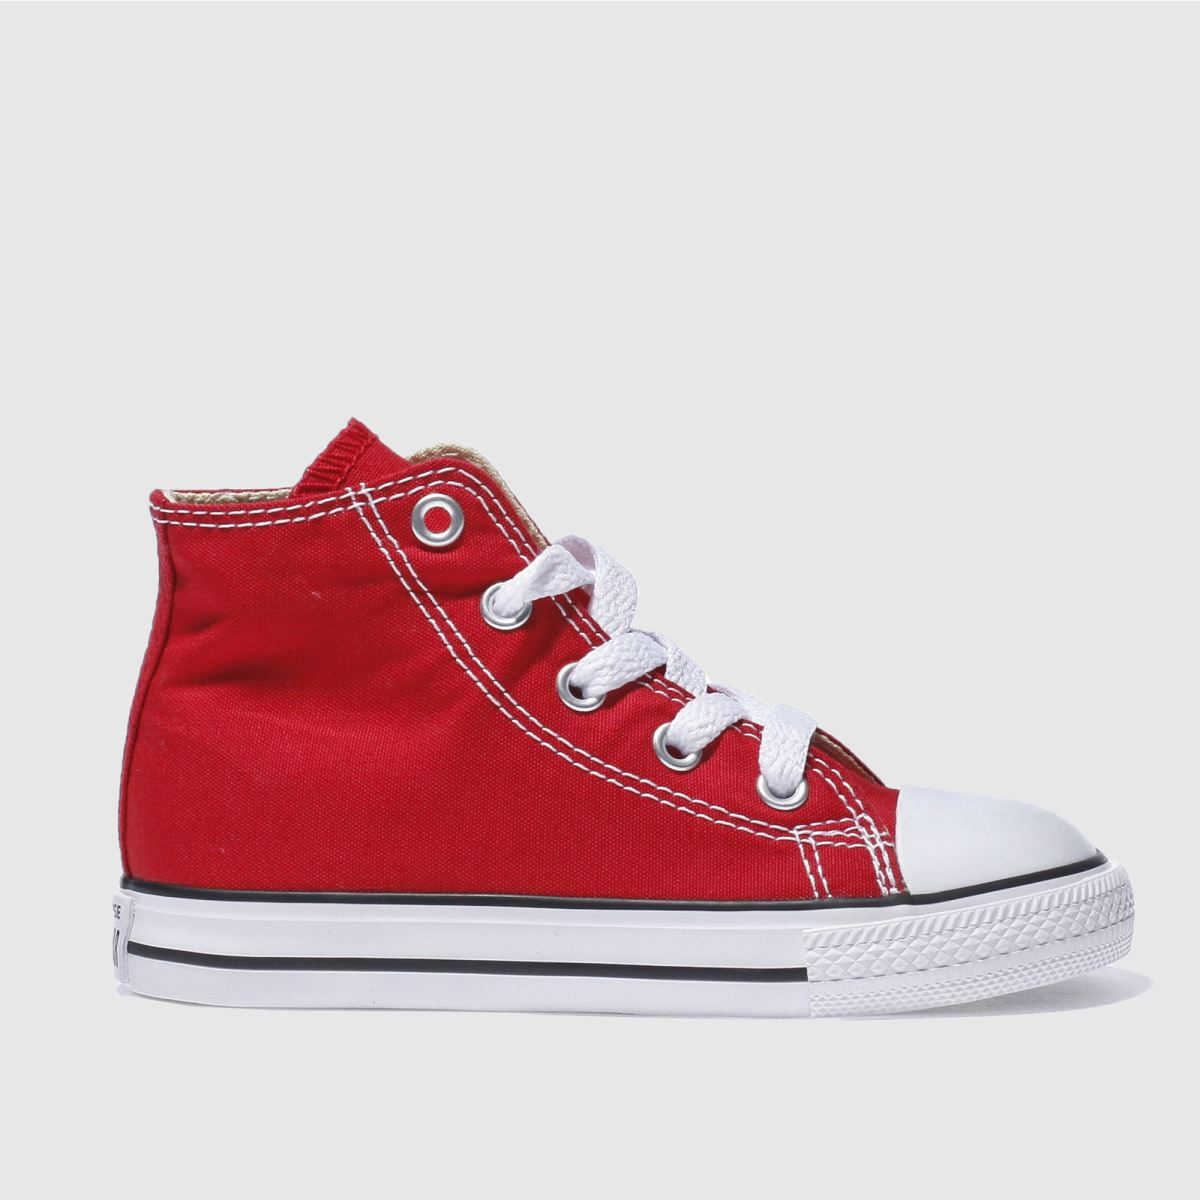 converse red all star hi Boys Toddler Trainers